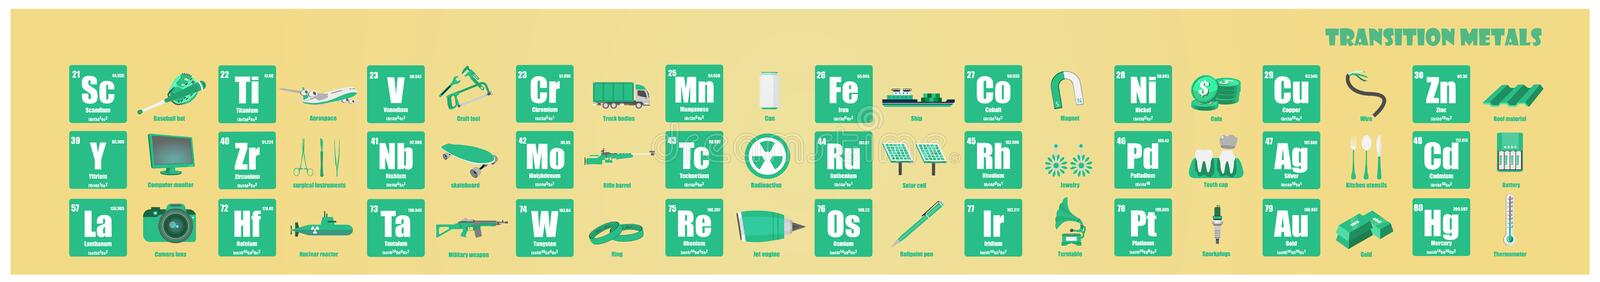 Periodic Table of element Transition metal stock illustration